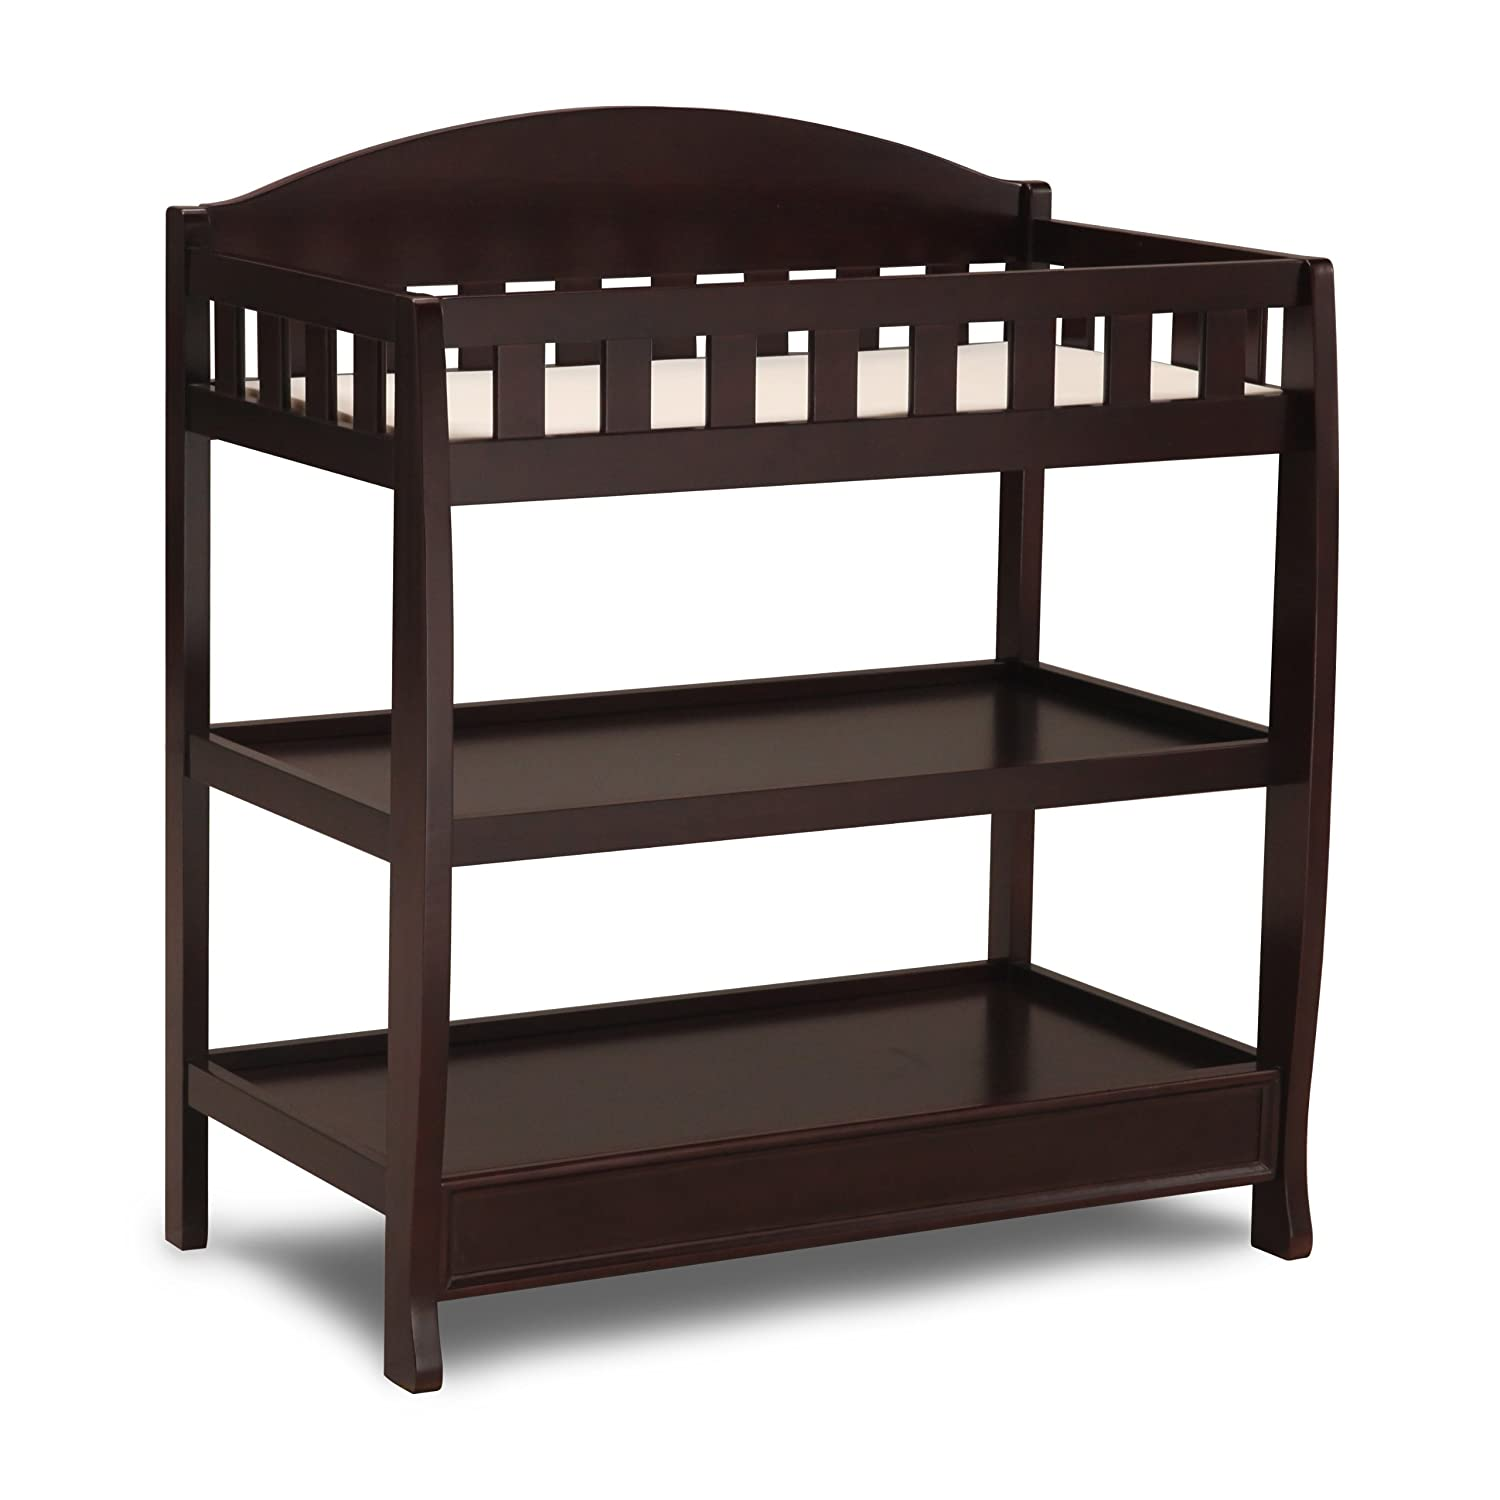 Delta Children Infant Changing Table with Pad, Dark Chocolate